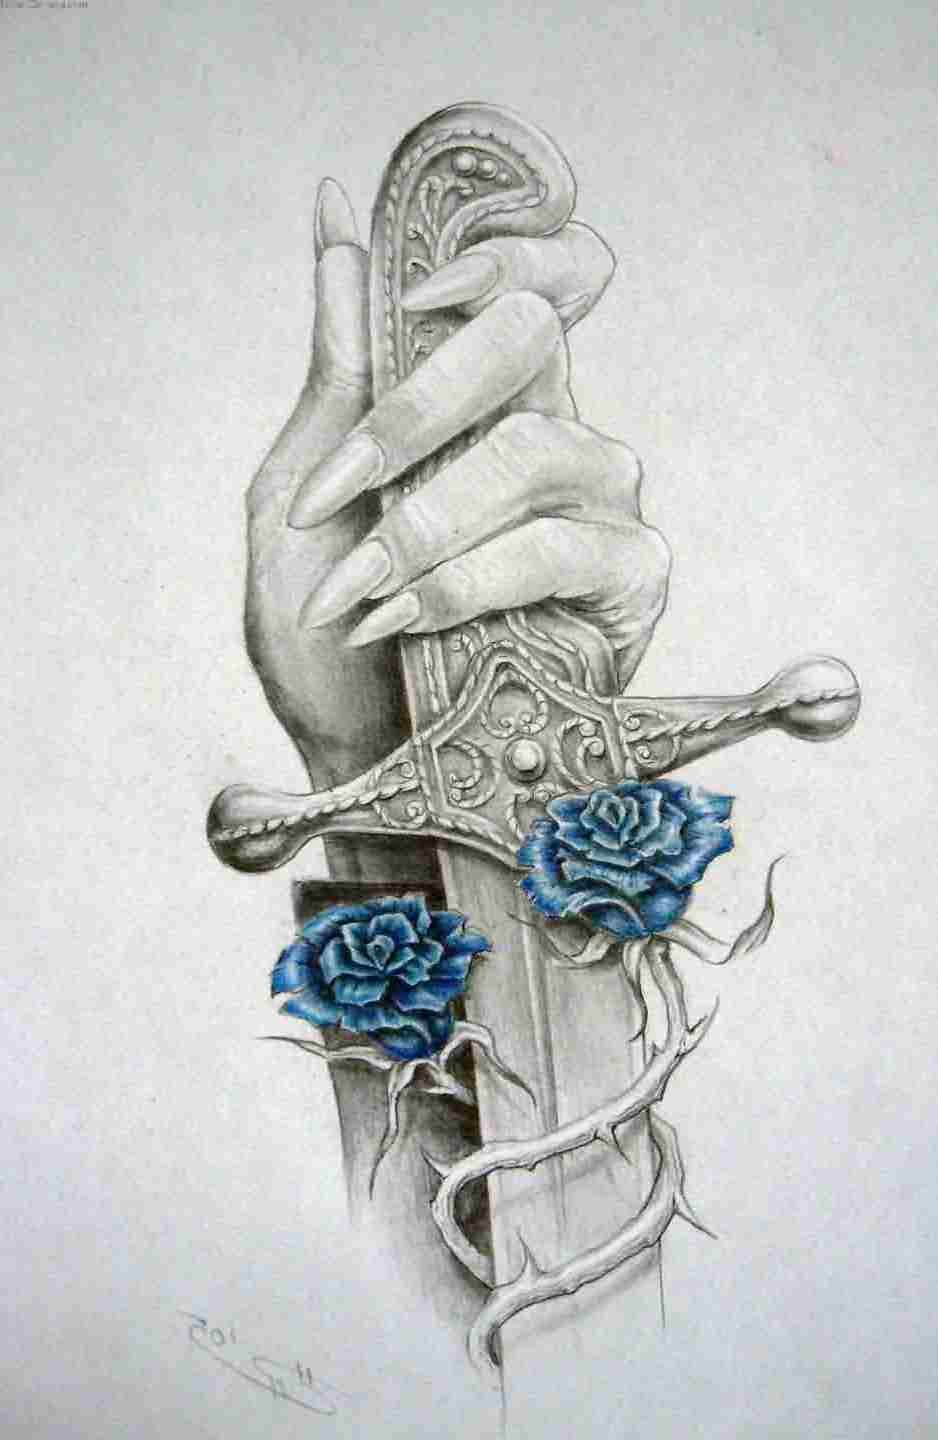 Hand Sword And Blue Rose Tattoos Sketch